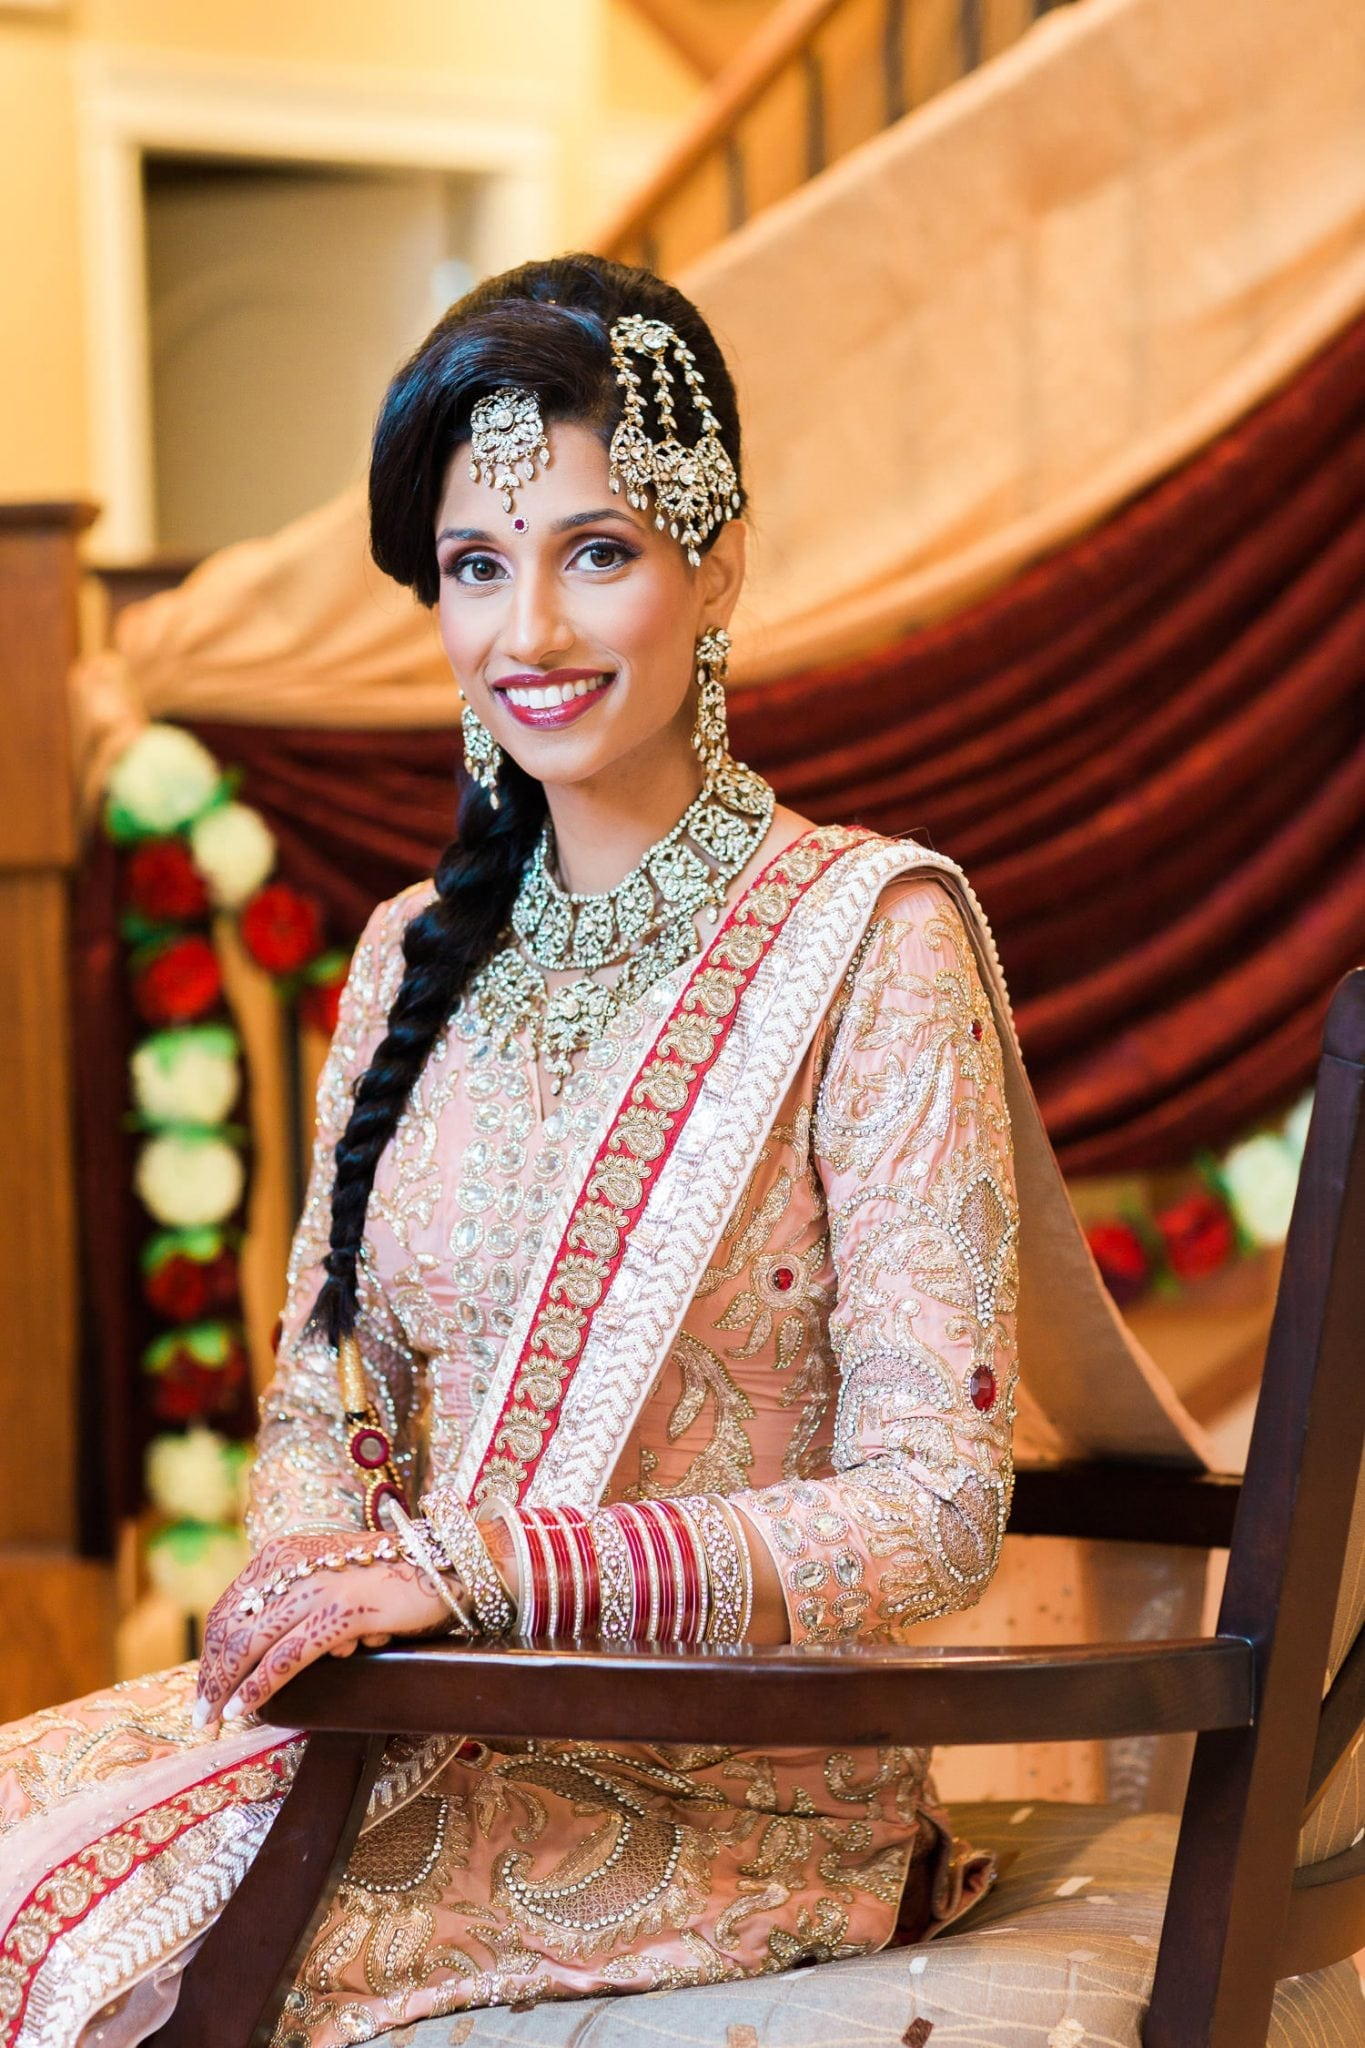 Indian bride getting ready for wedding | Vancouver Indian wedding photographer